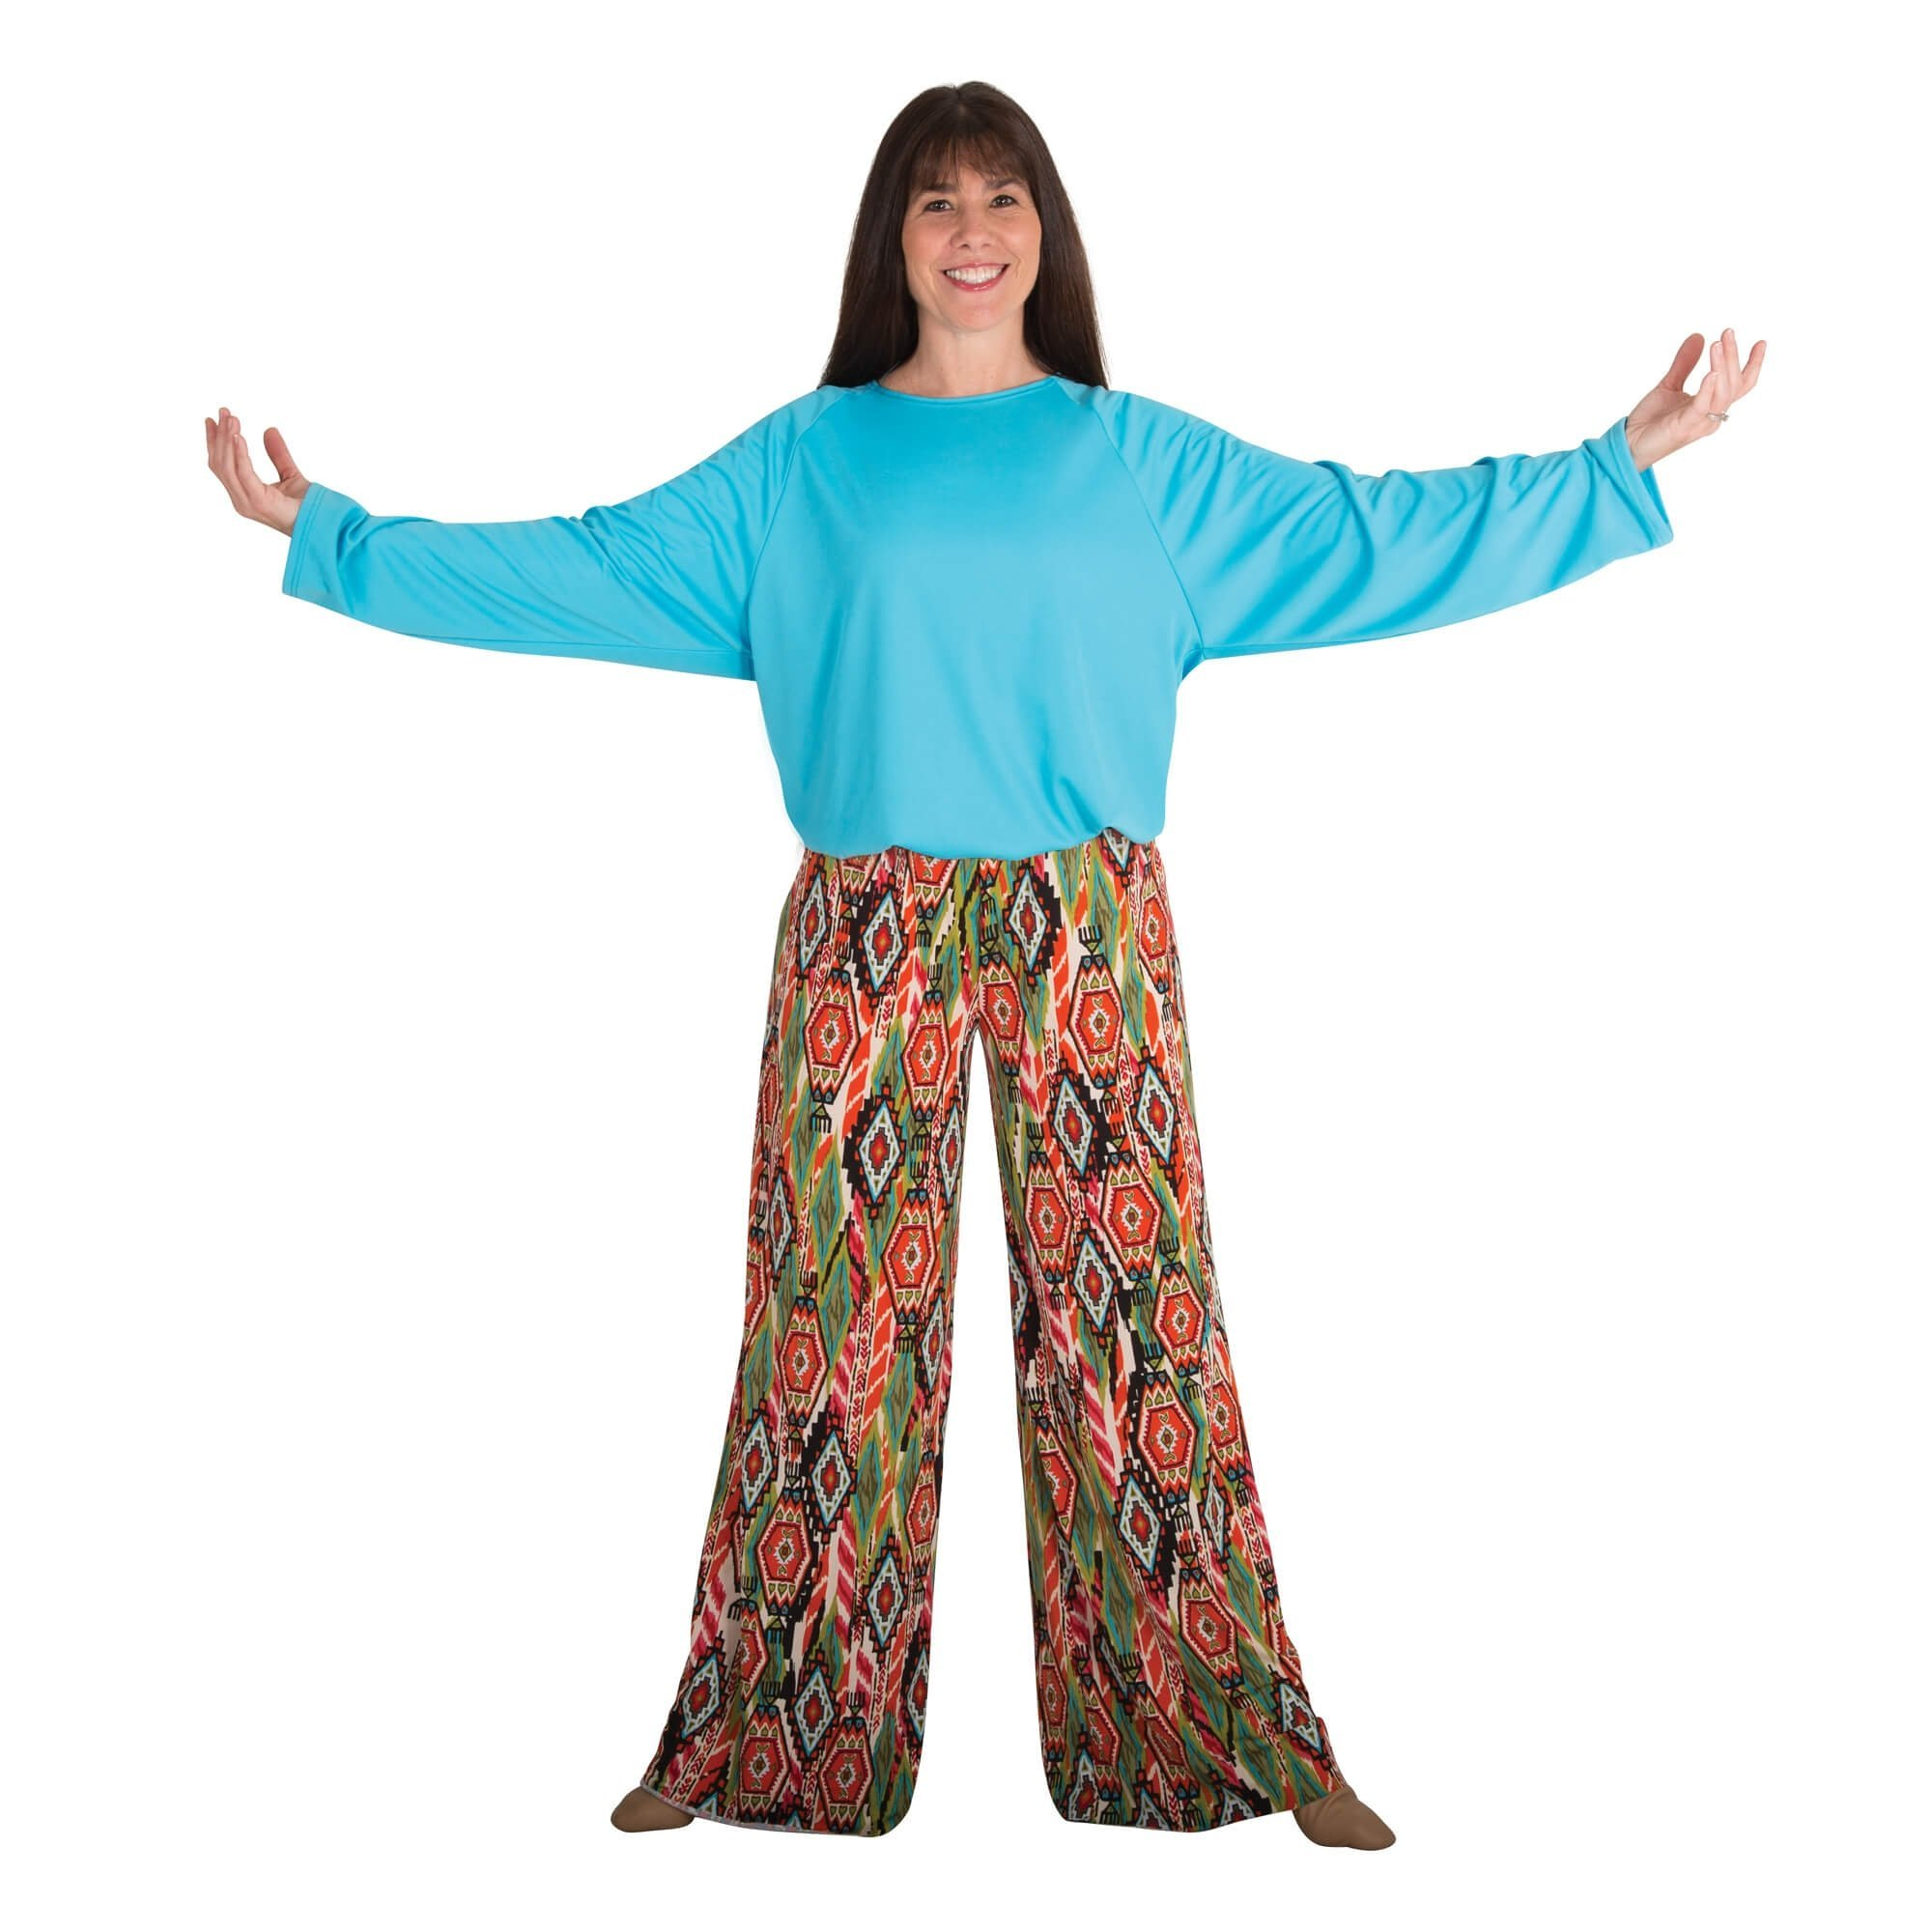 Body Wrappers Printed Palazzo Pants